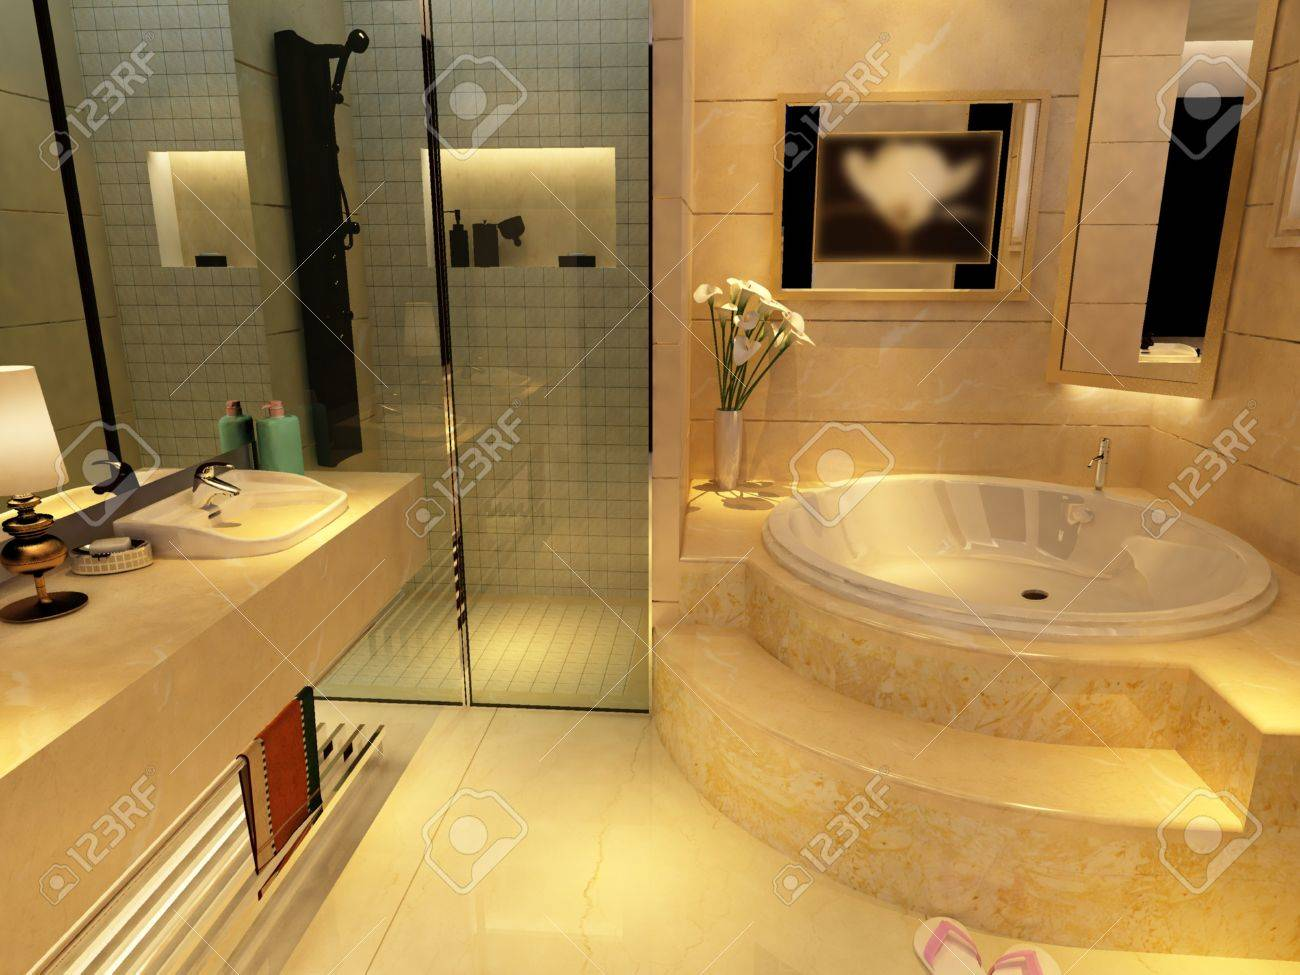 rendering of the modern bathroom interior Stock Photo - 9535042